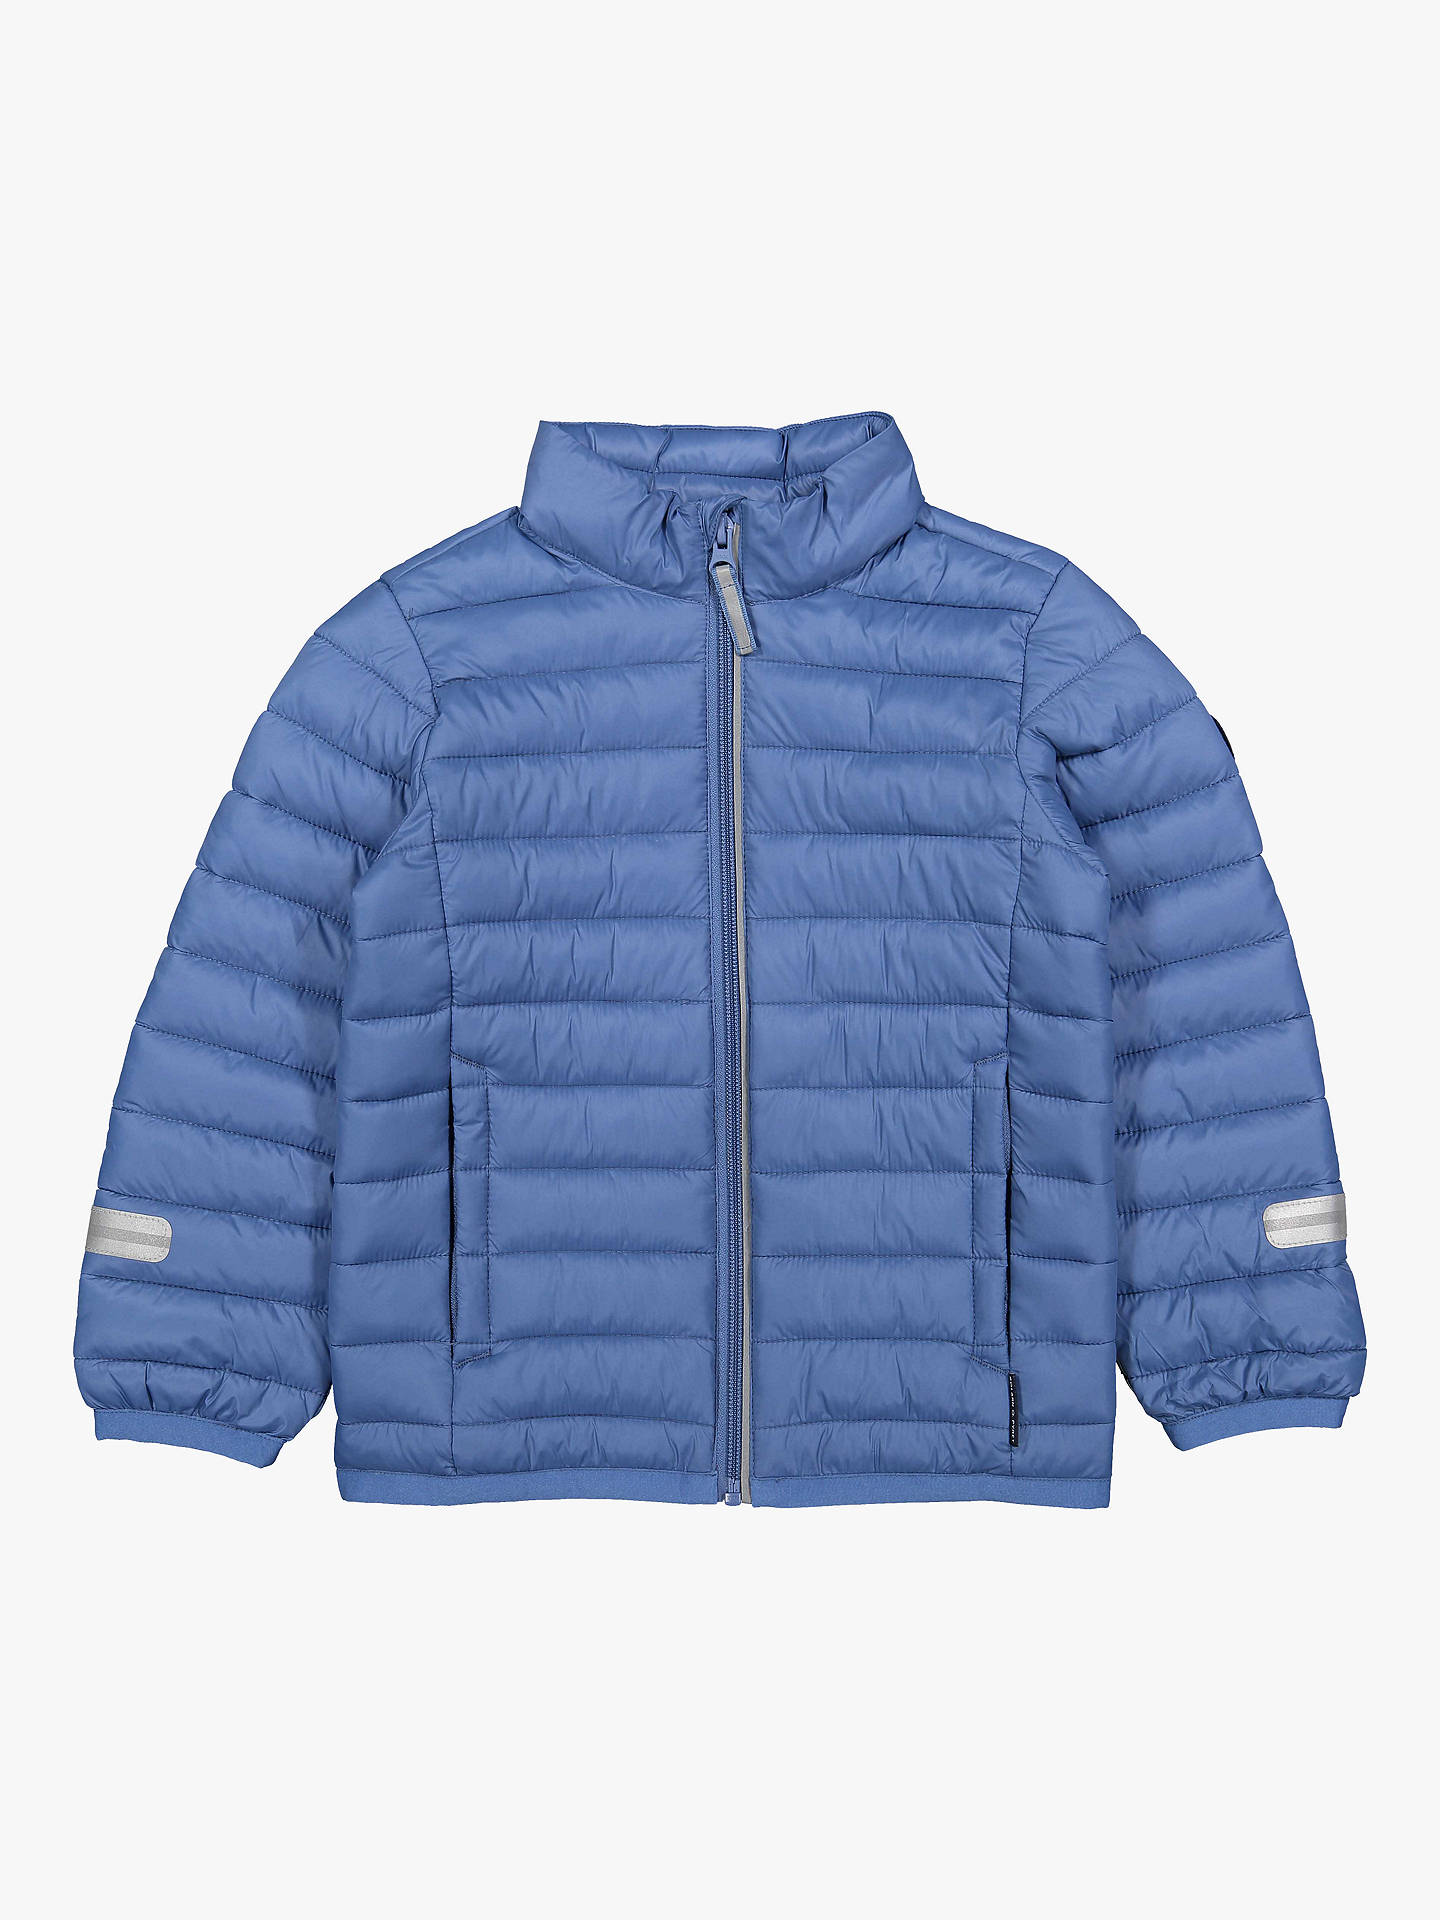 77c141e53 Polarn O. Pyret Children s Puffer Jacket